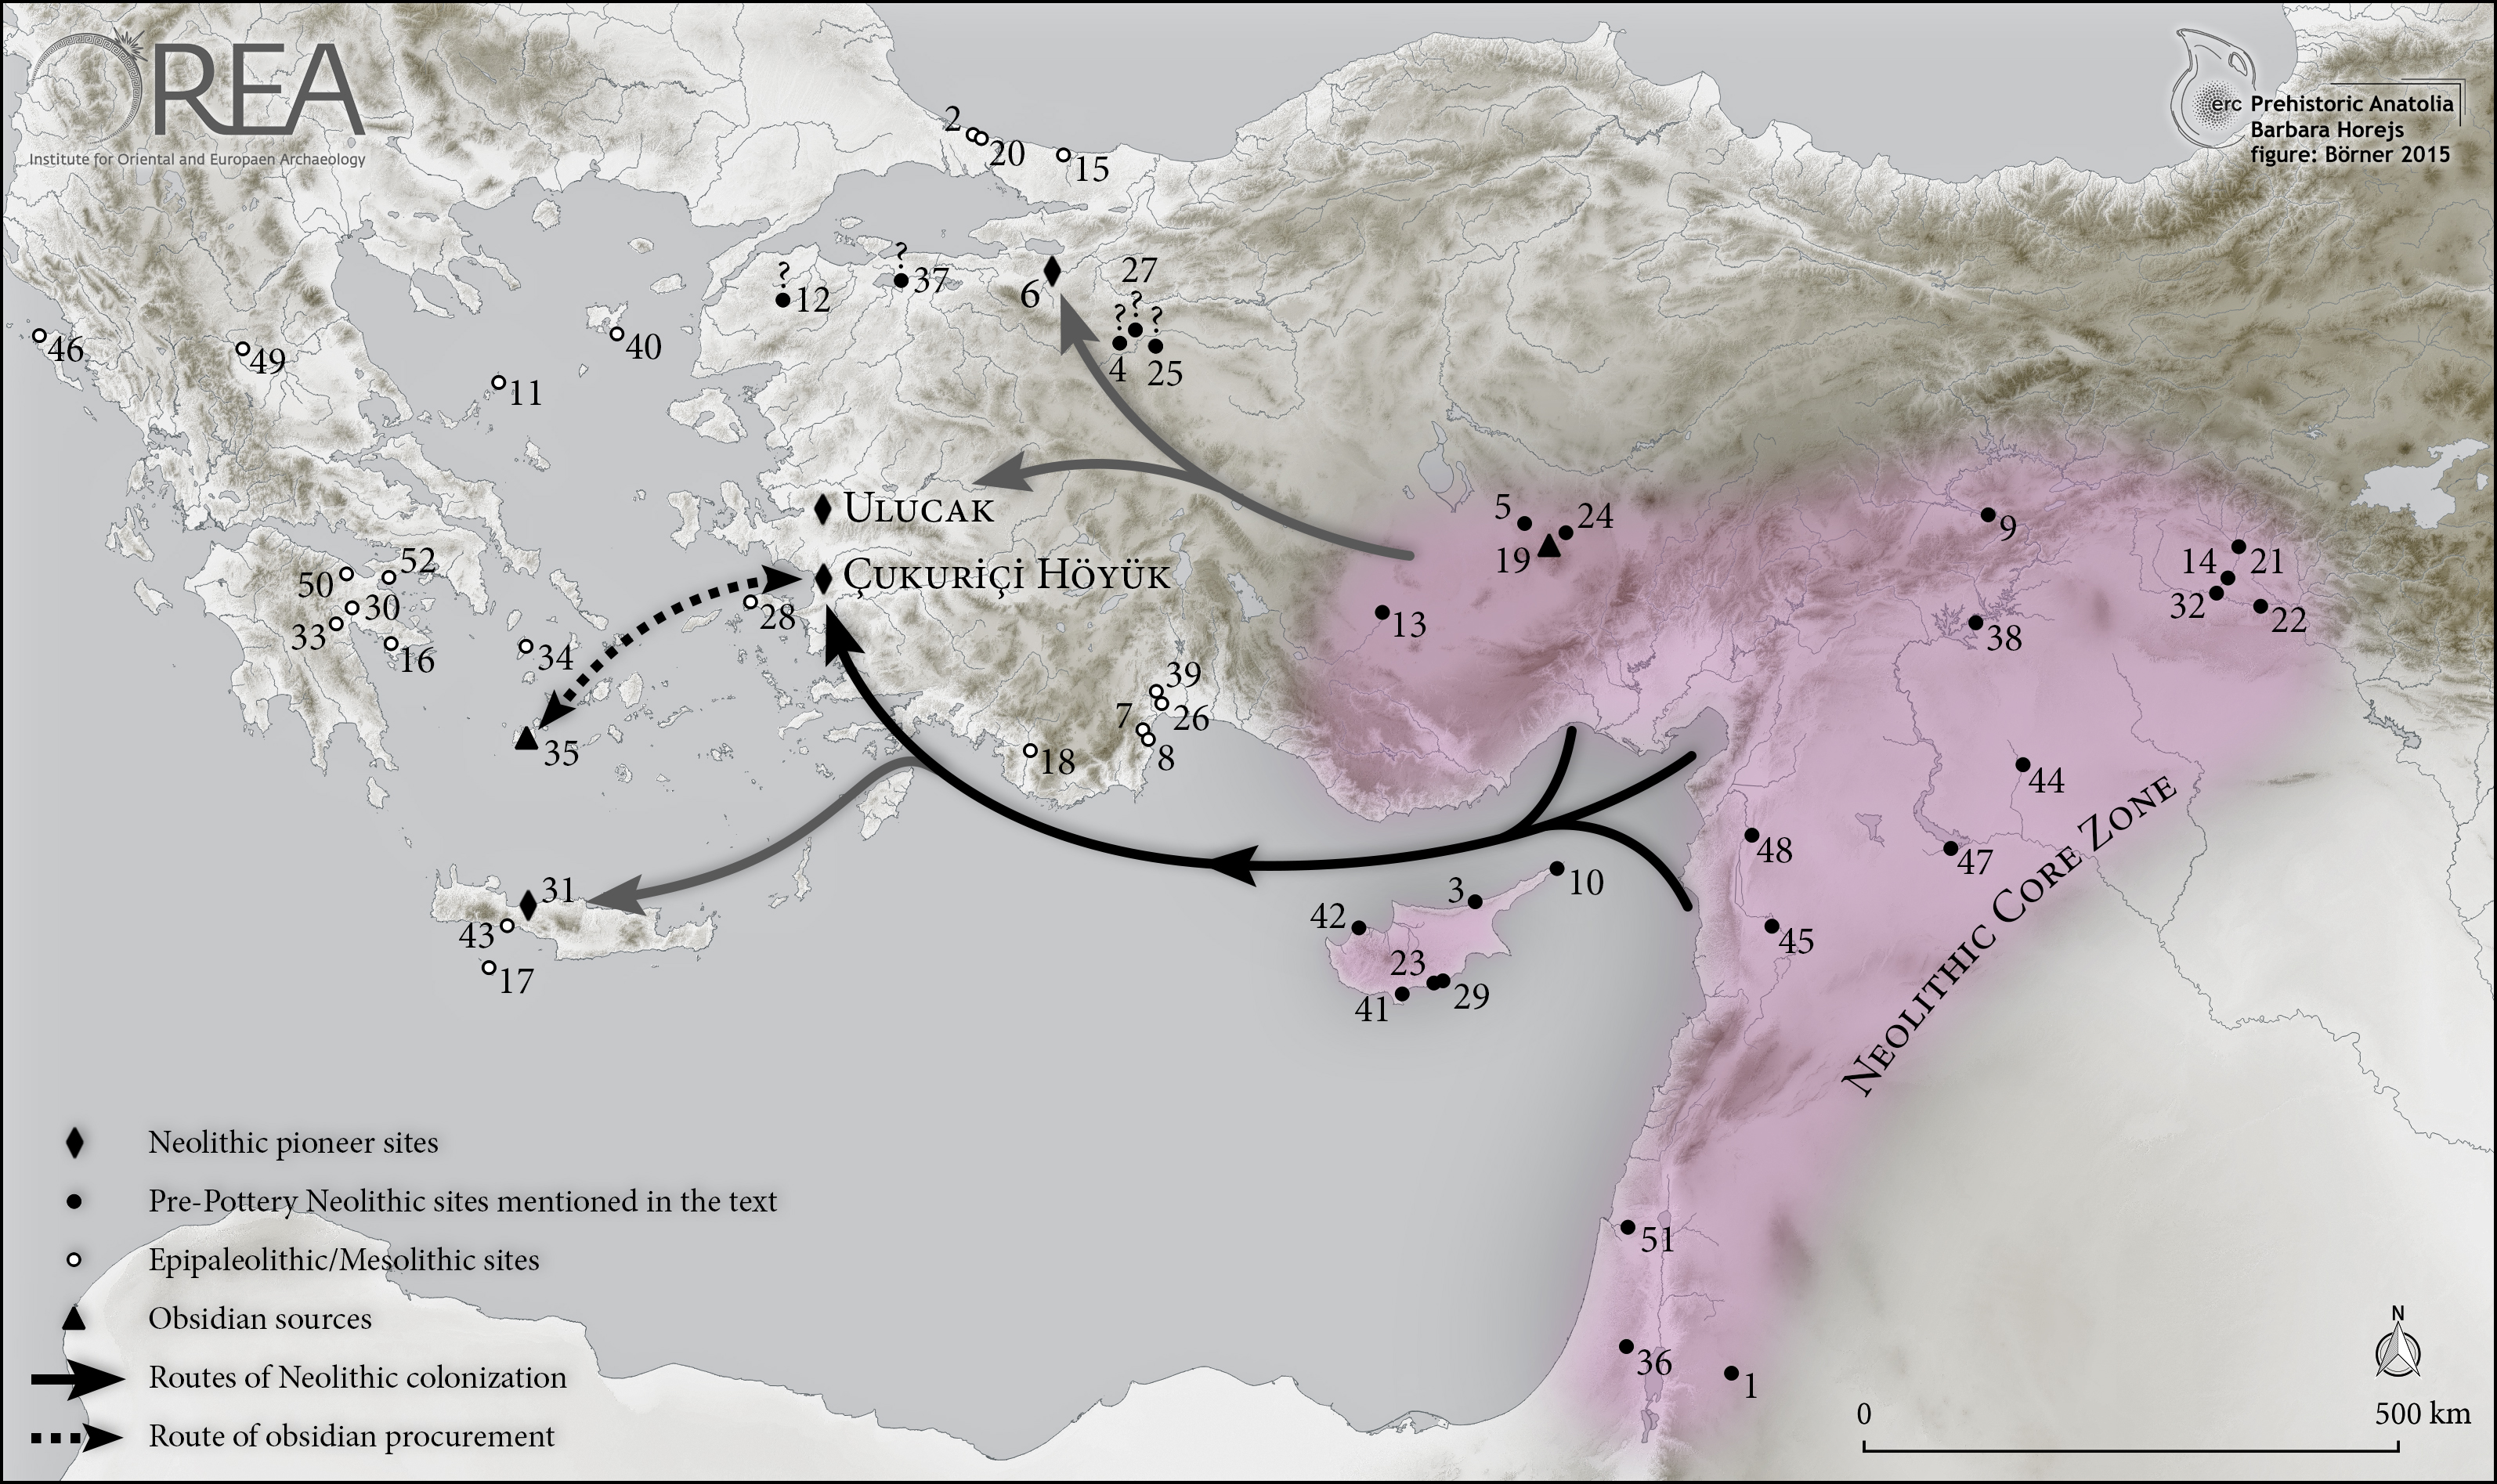 Map of the neolithisation of Western Anatolia with supposed routes of colonization from the Neolithic core zone of the Fertile Crescent